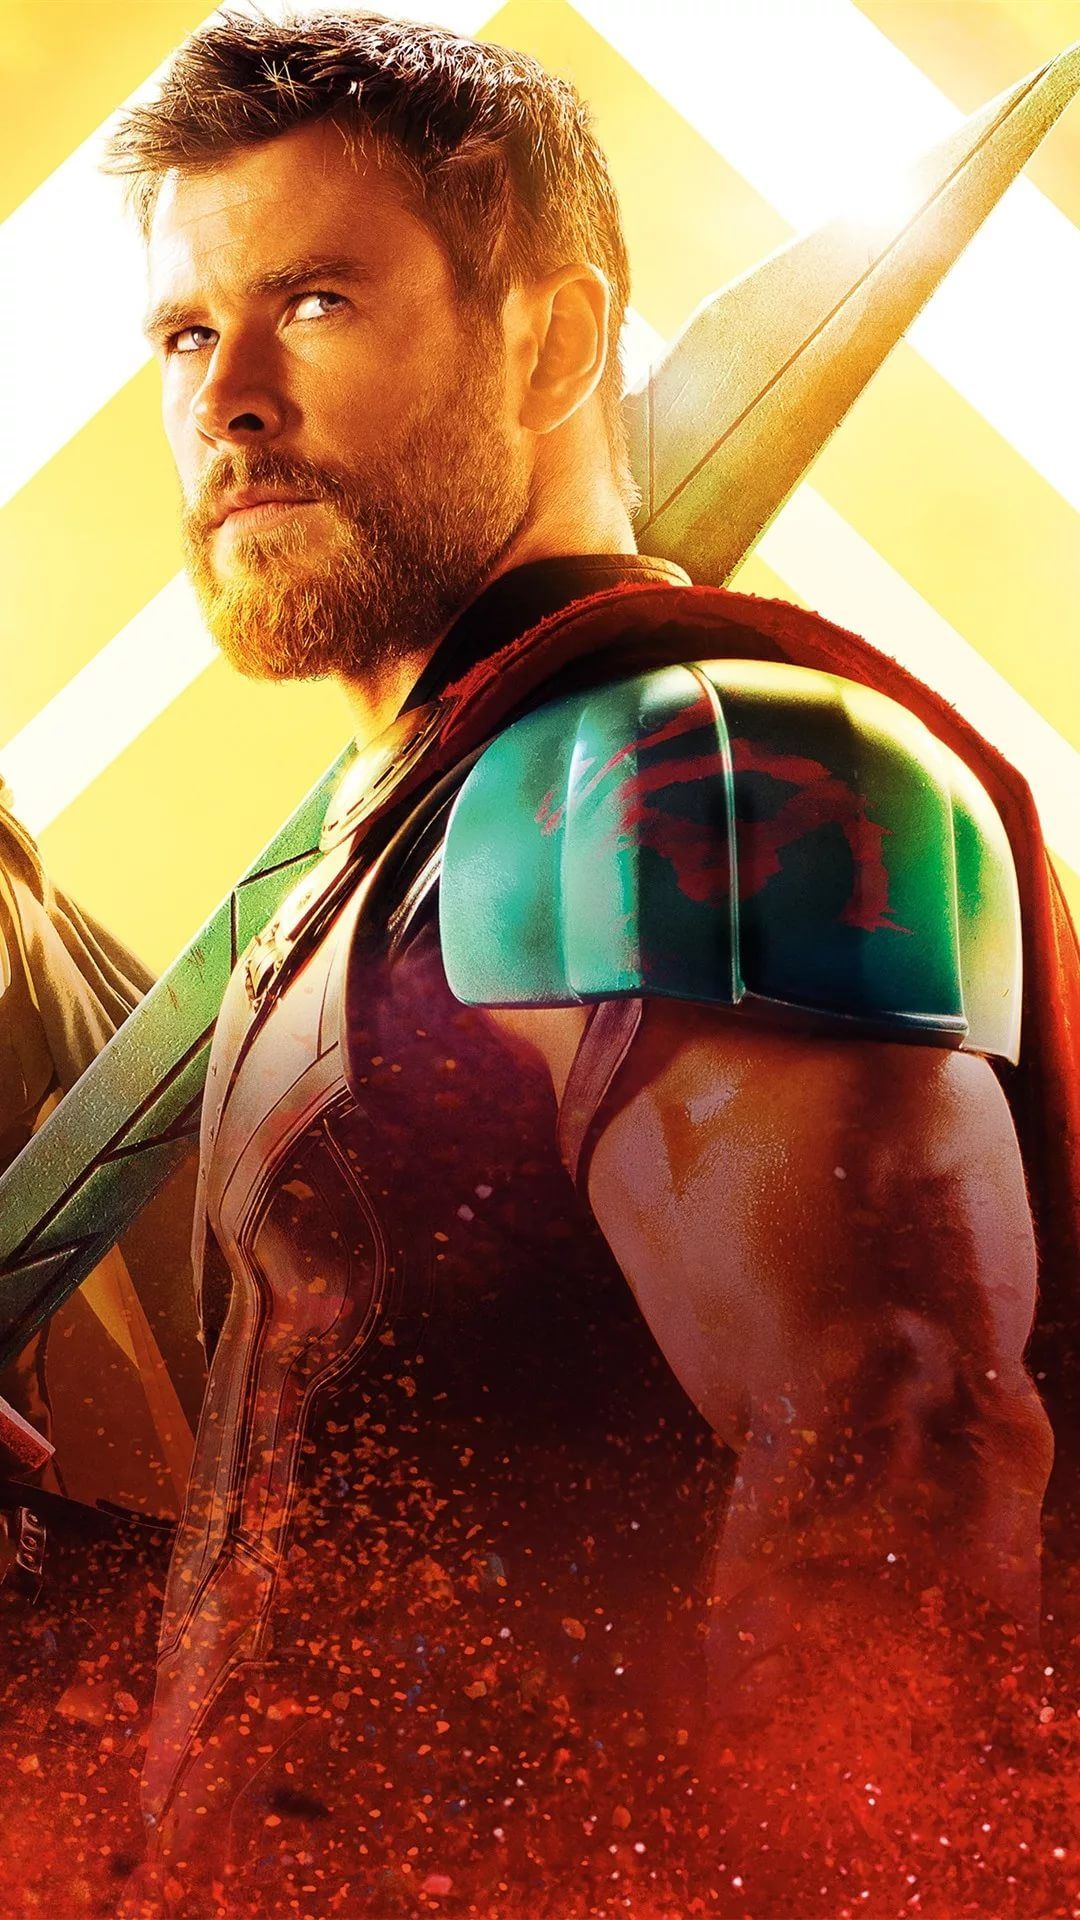 Thor iPhone hd wallpaper